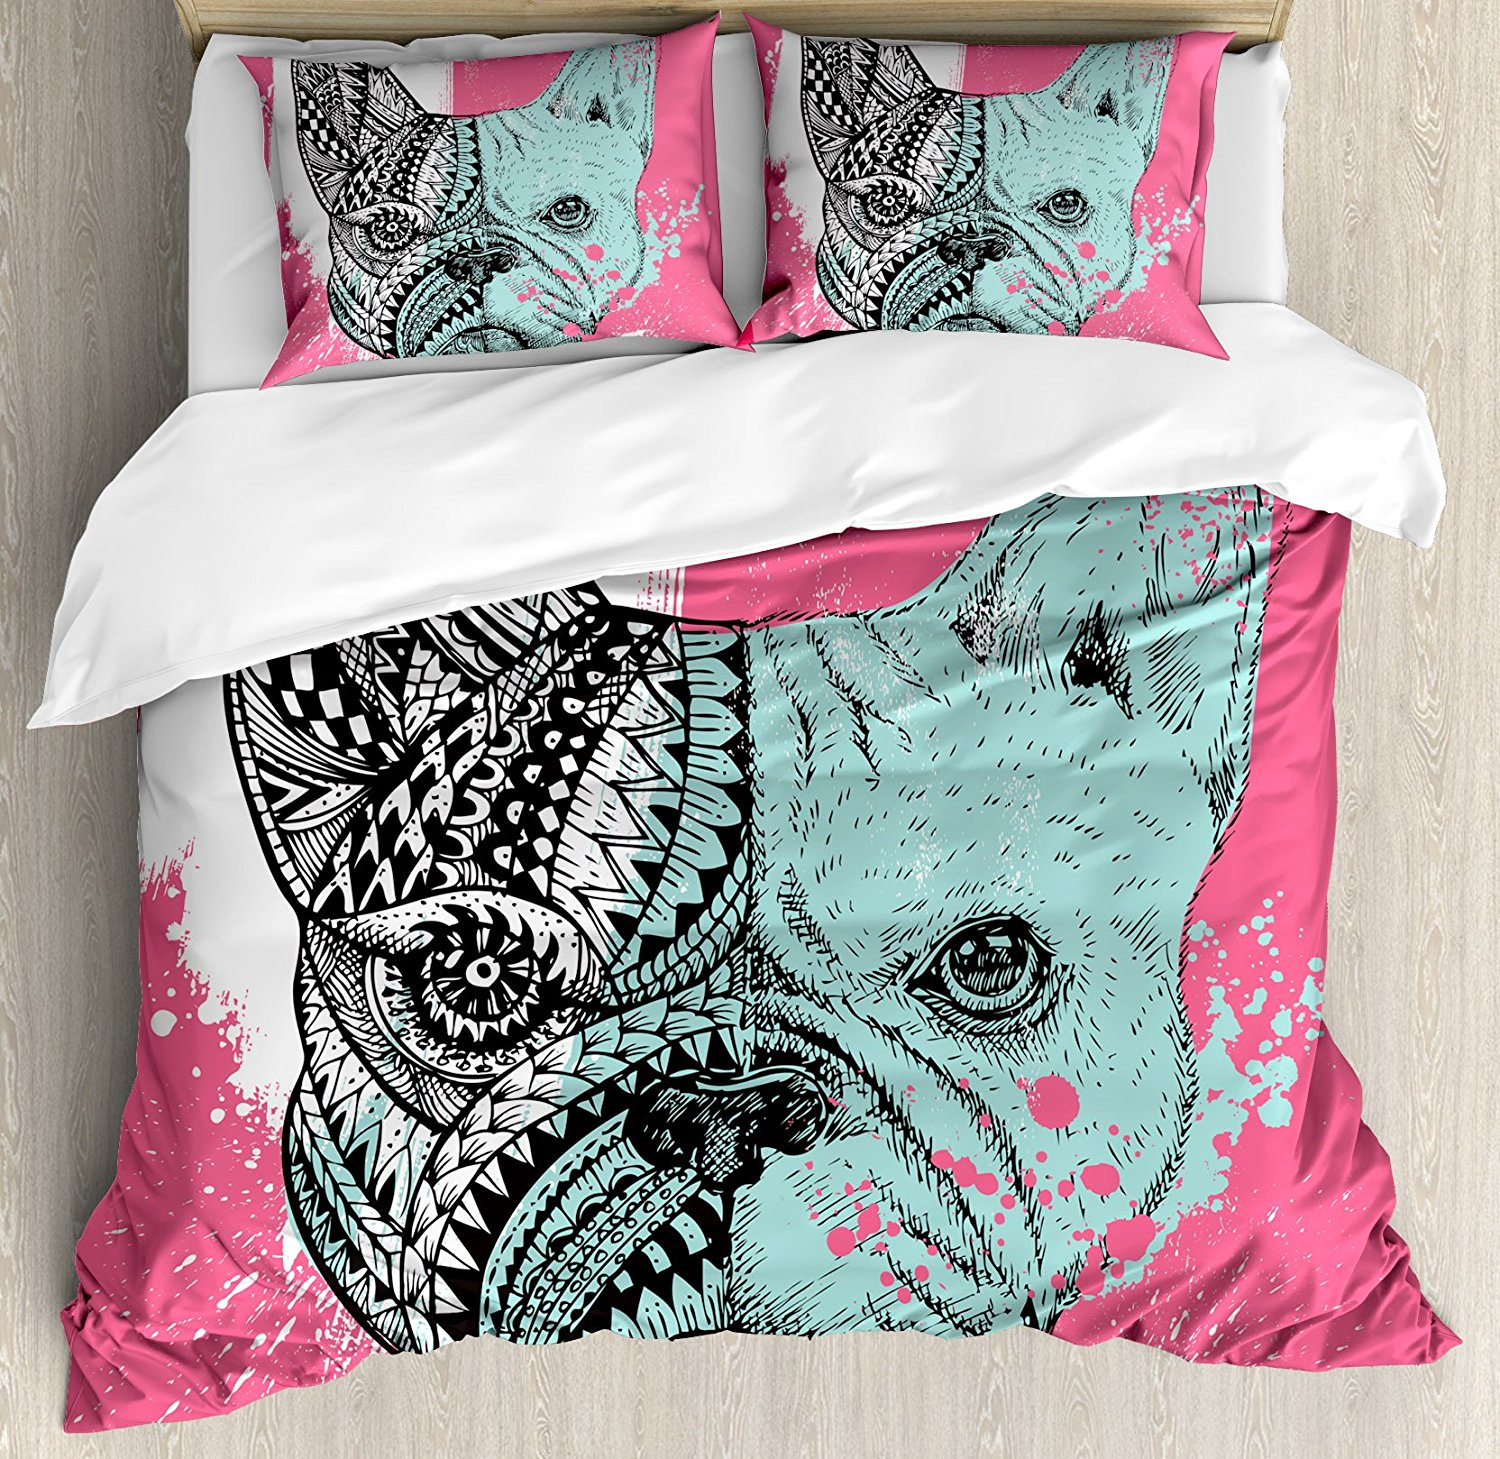 Modern Duvet Cover Set French Bulldog Split with Ethnic and Paintbrush Vivid Artwork Pri ...